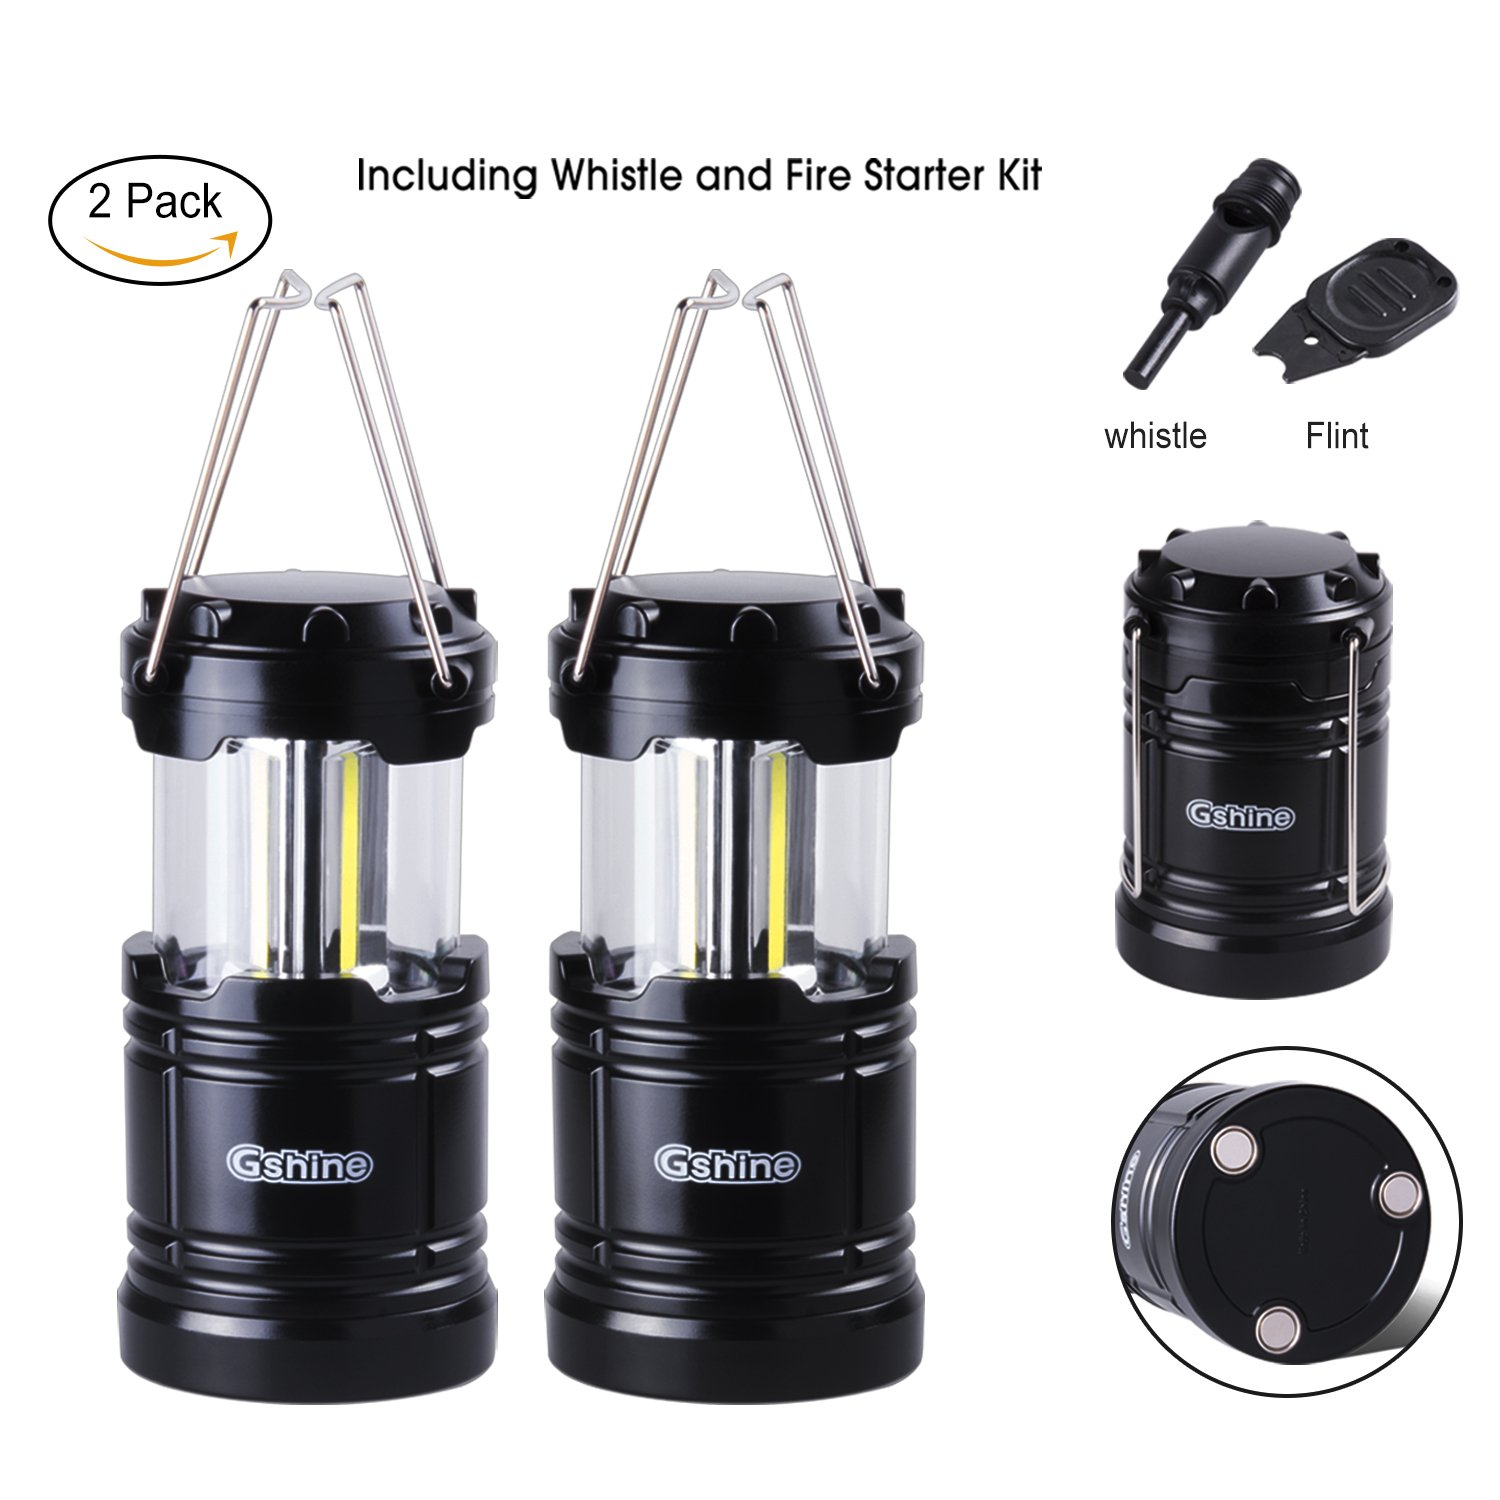 Gshine Camping Lantern, LED Lantern Lights with Magnetic Base 2 Pack Portable Camping Gear COB Water Resistant Survival Kit for Emergency, Whistle and Fire Starter Kit Included (Black - Pack of 2)